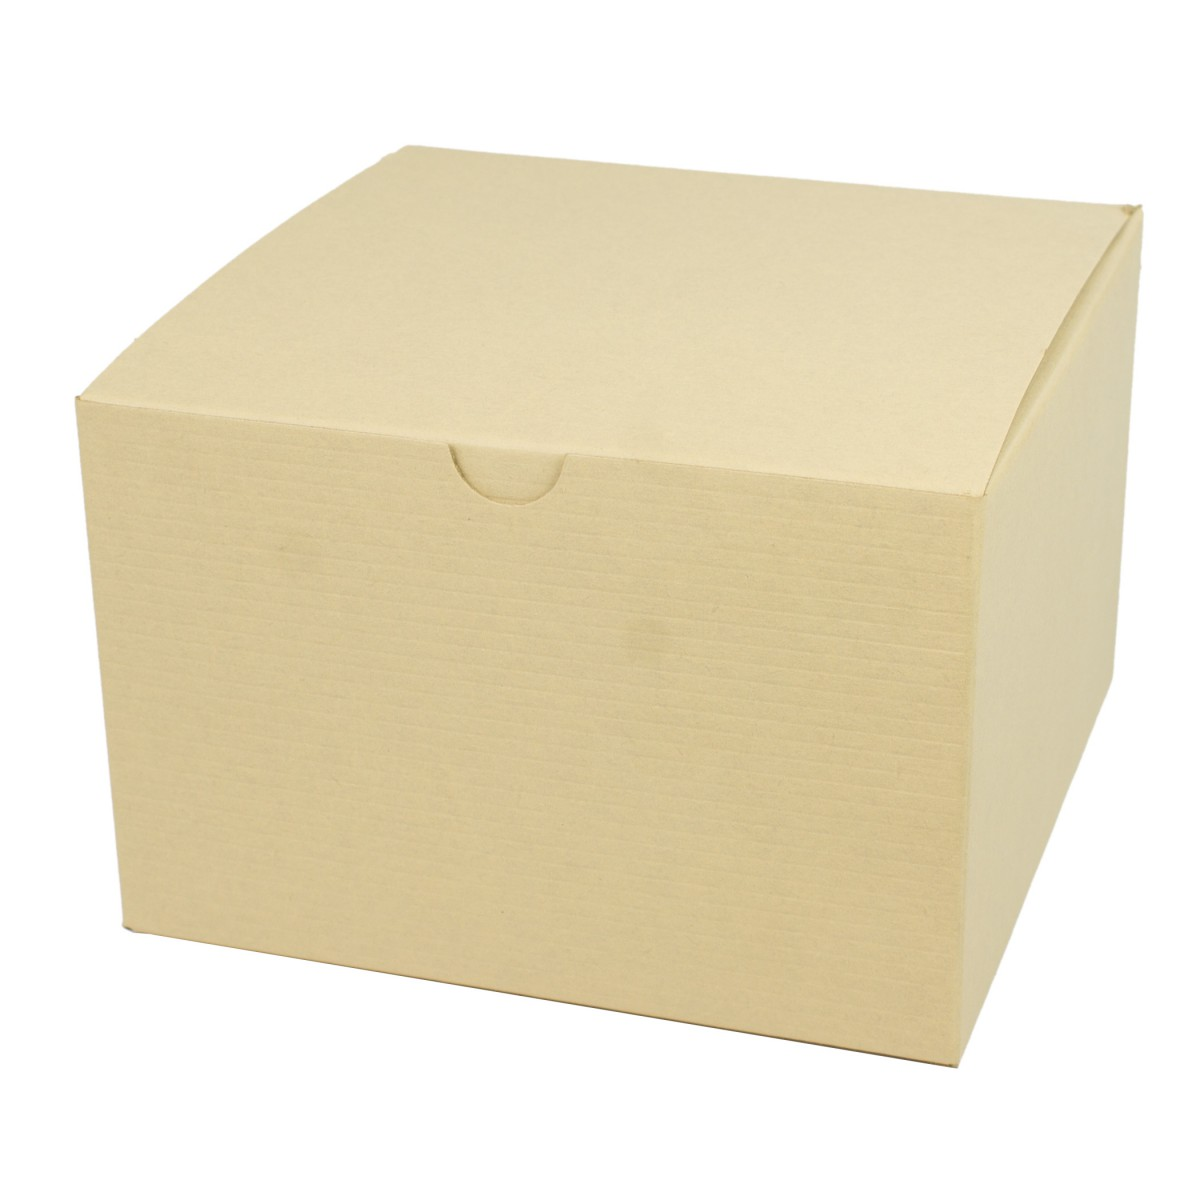 6 x 6 x 4 OATMEAL TINTED TUCK-TOP GIFT BOXES